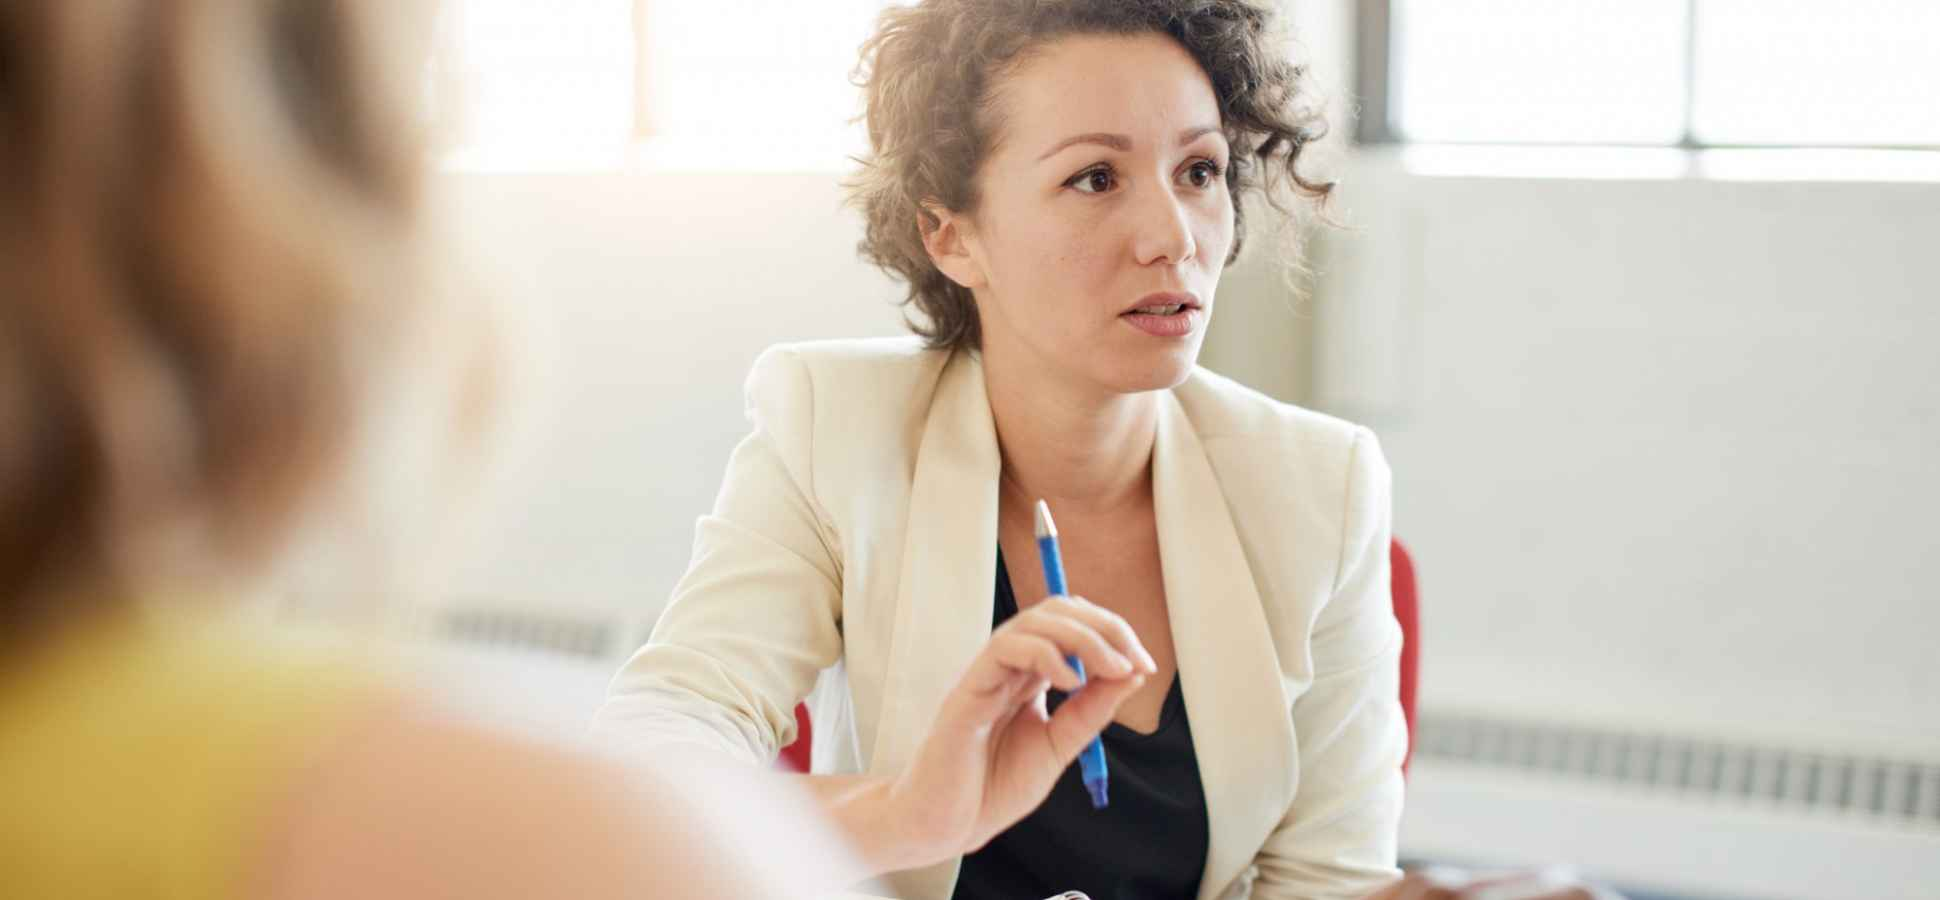 4 Things You Should Know About Leadership